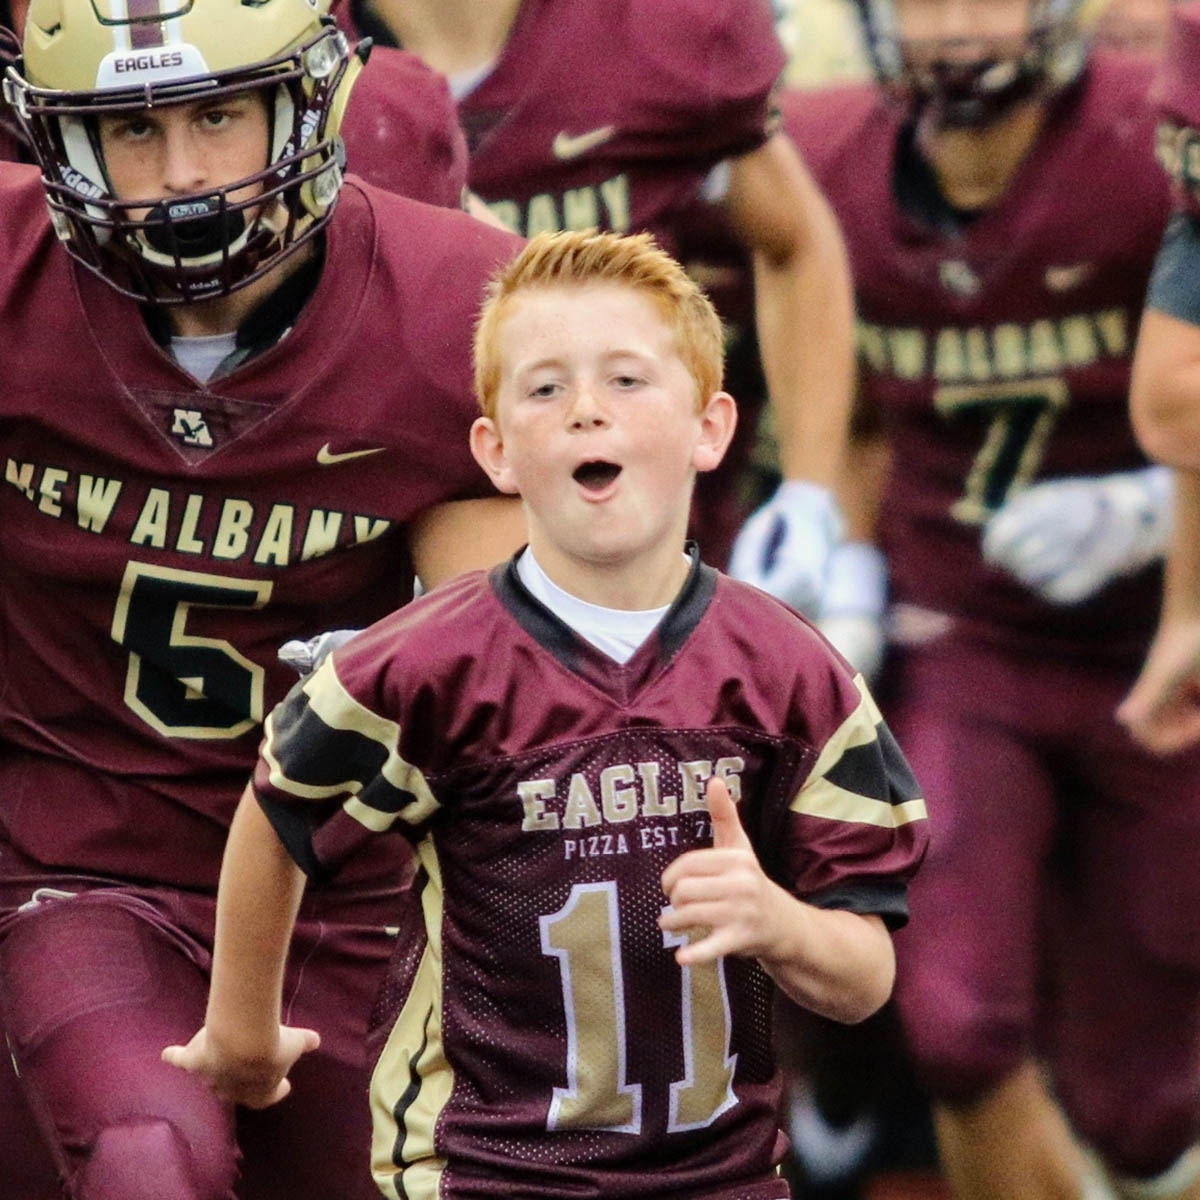 Young boy with a New Albany football jersey on running and cheering with the New Albany football team running behind him.